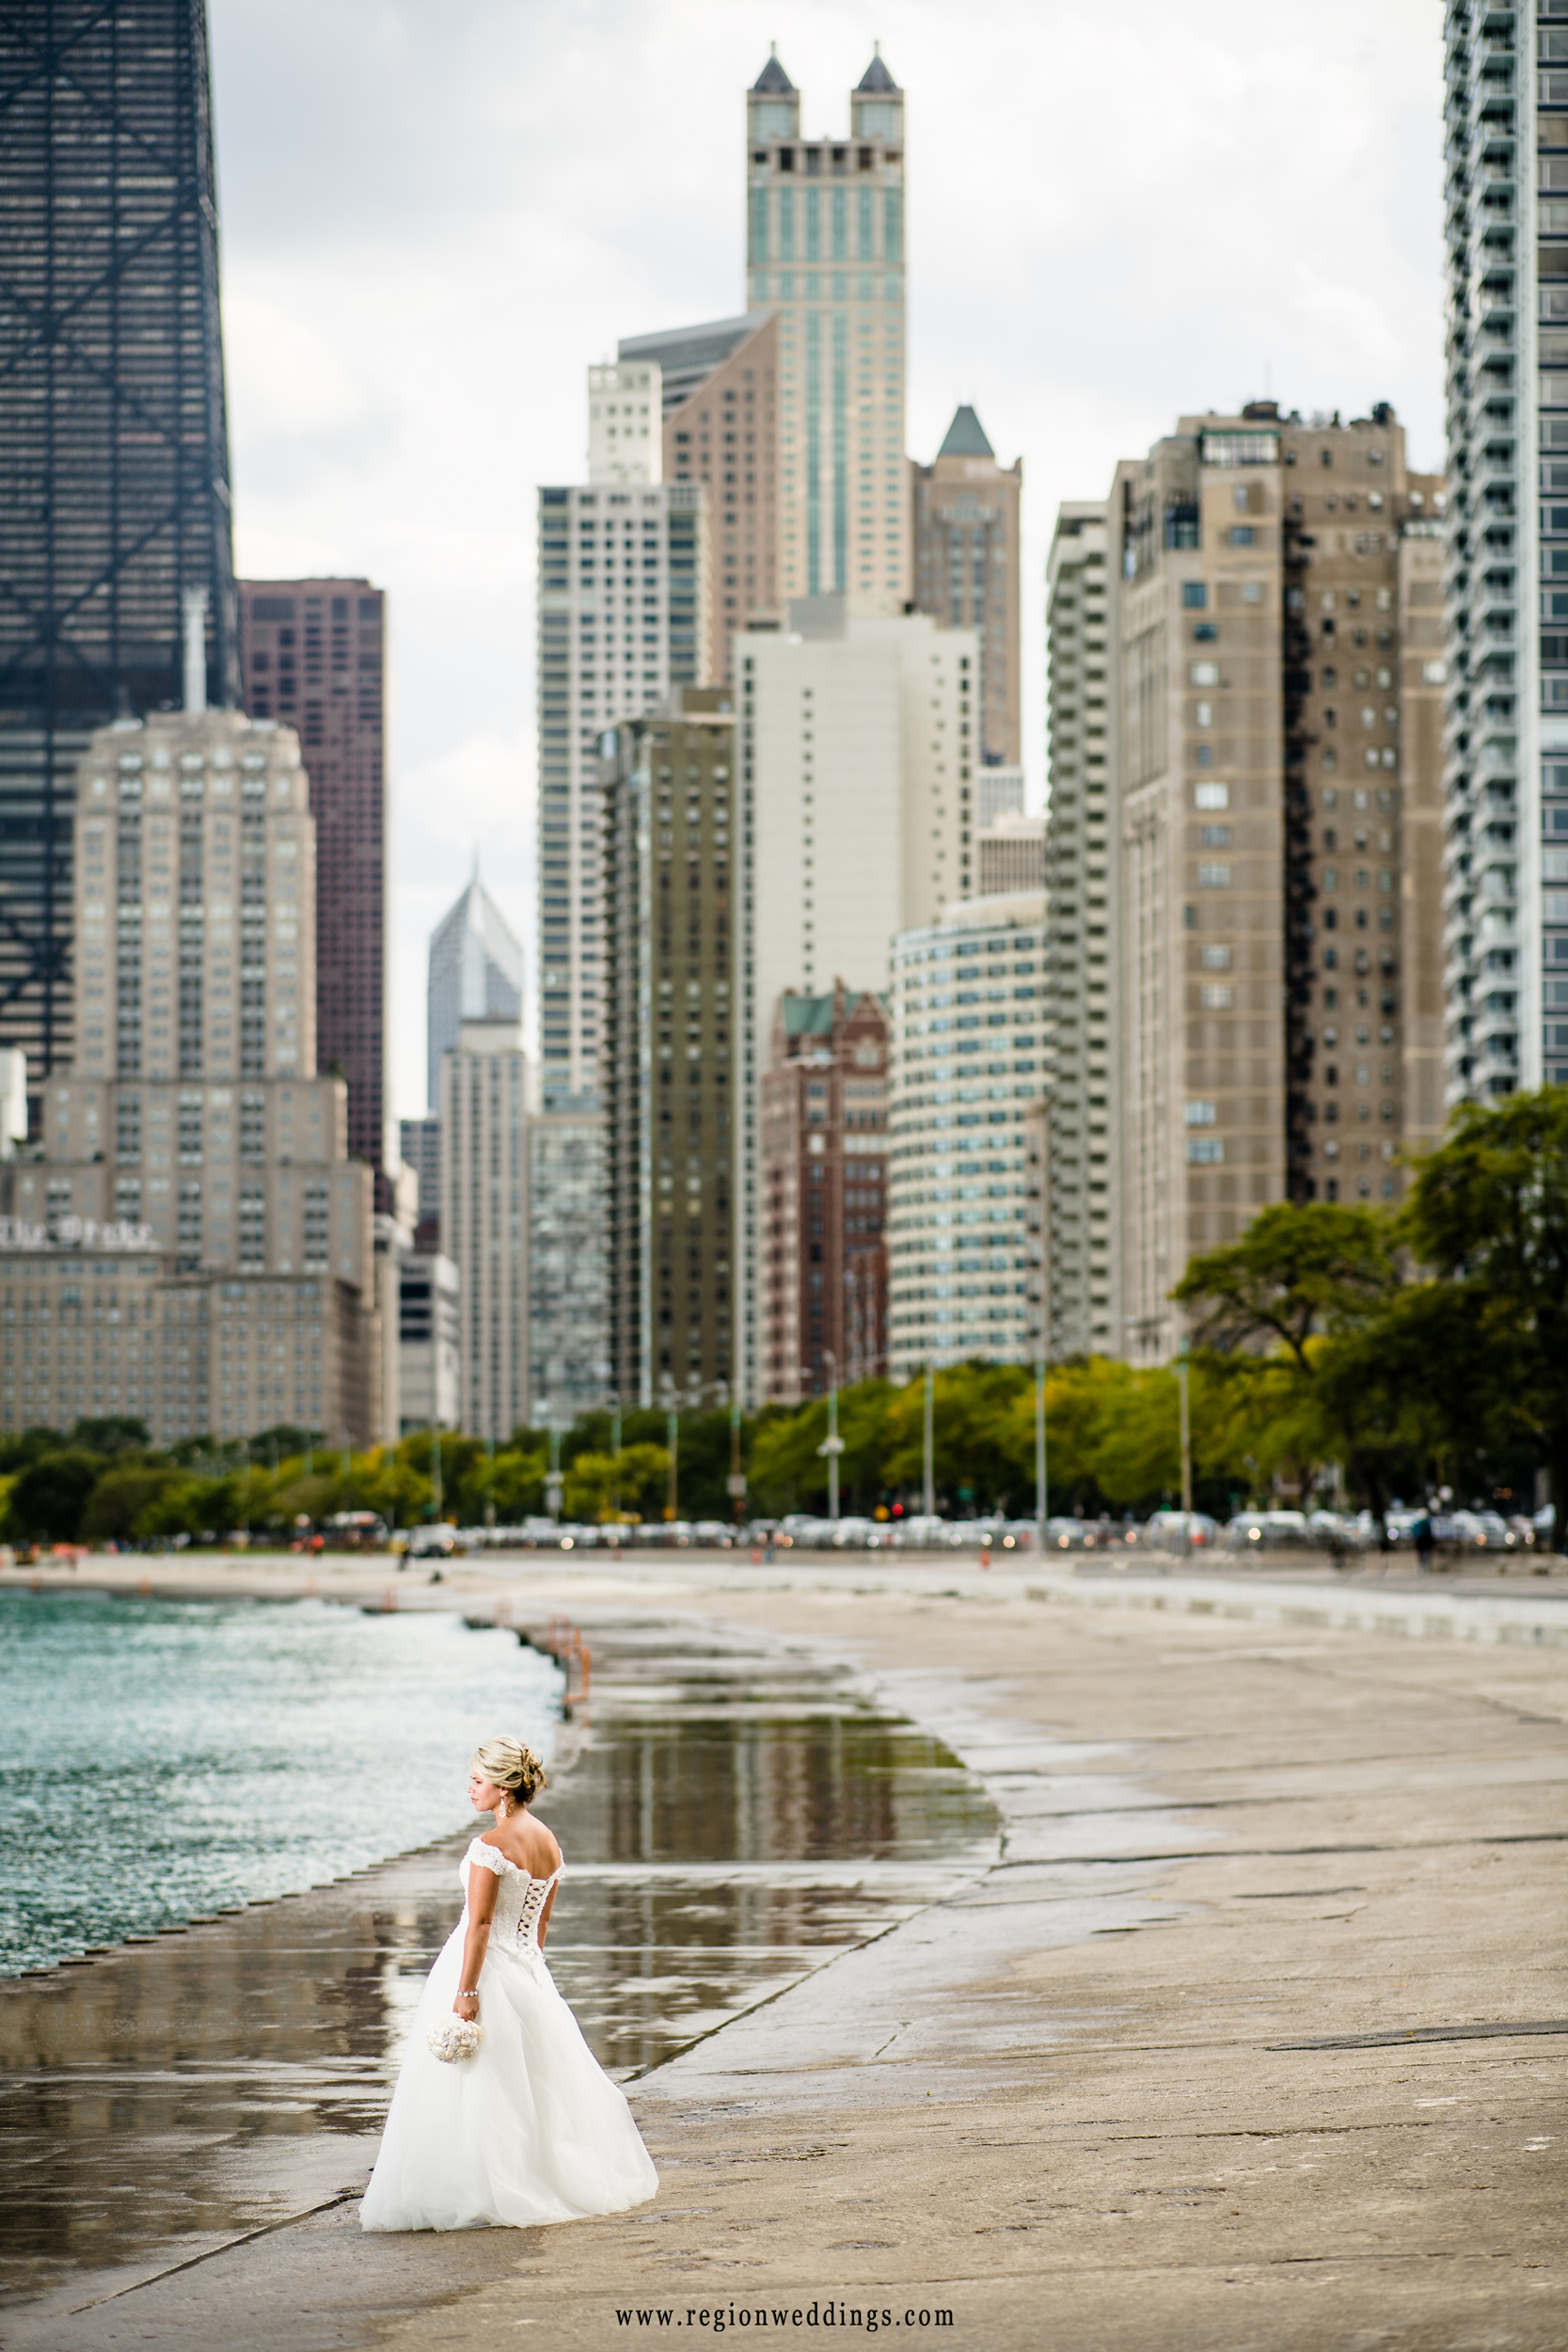 A view of the skyscrapers in Chicago from North Avenue Beach during a bridal portrait session.